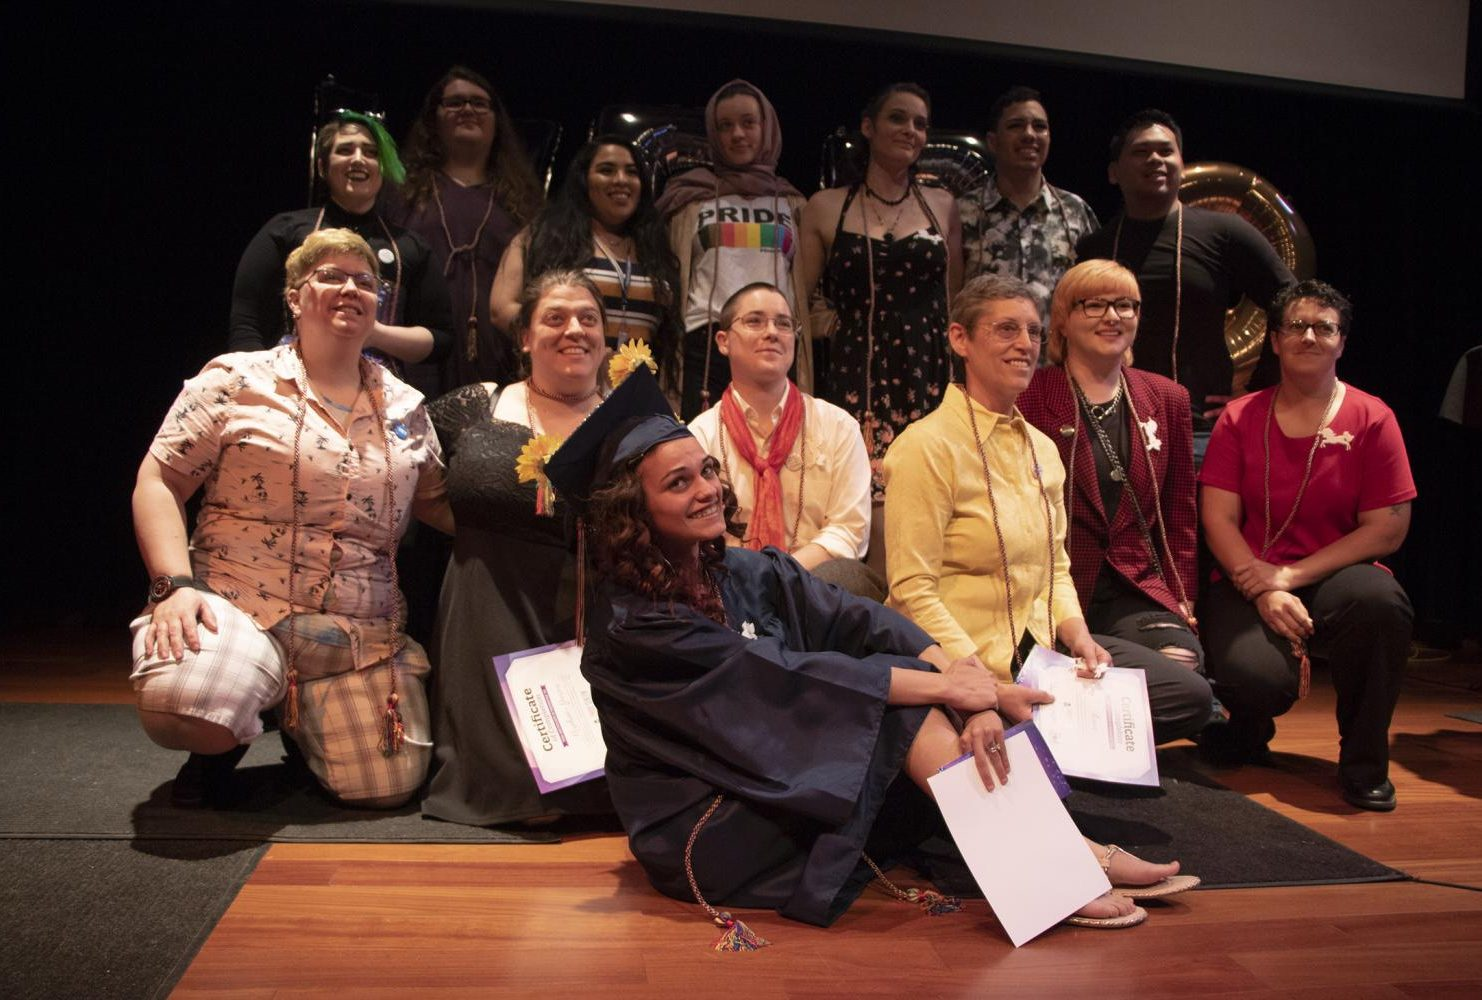 Fourteen graduates collected their diplomas on May 3 in the music recital hall at American River College's Lavender Graduation. The number of graduates almost tripled from last year.